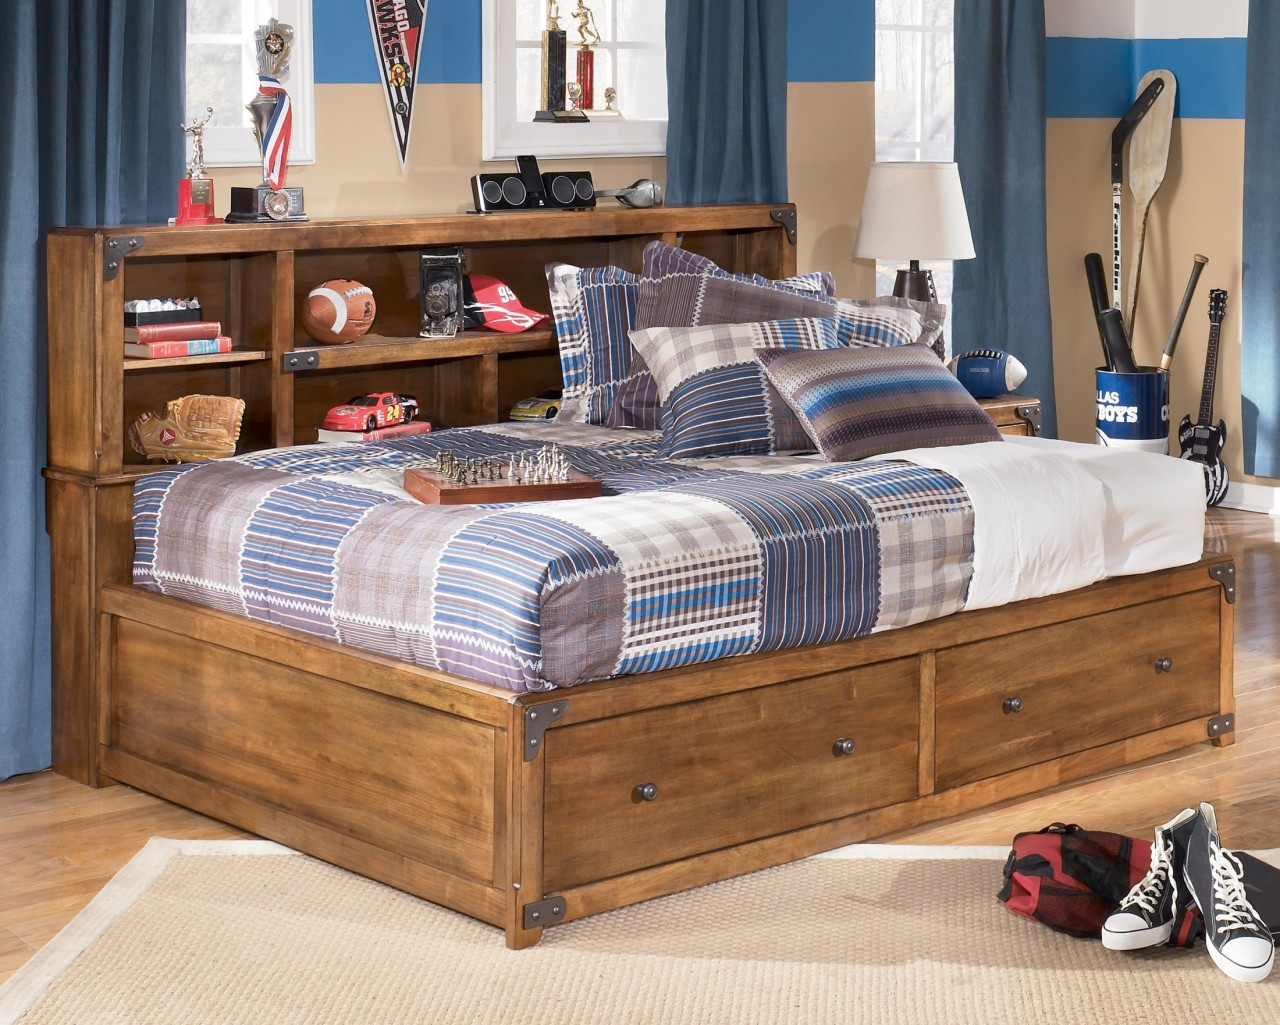 Image of: Bed With Headboard Storage Kids